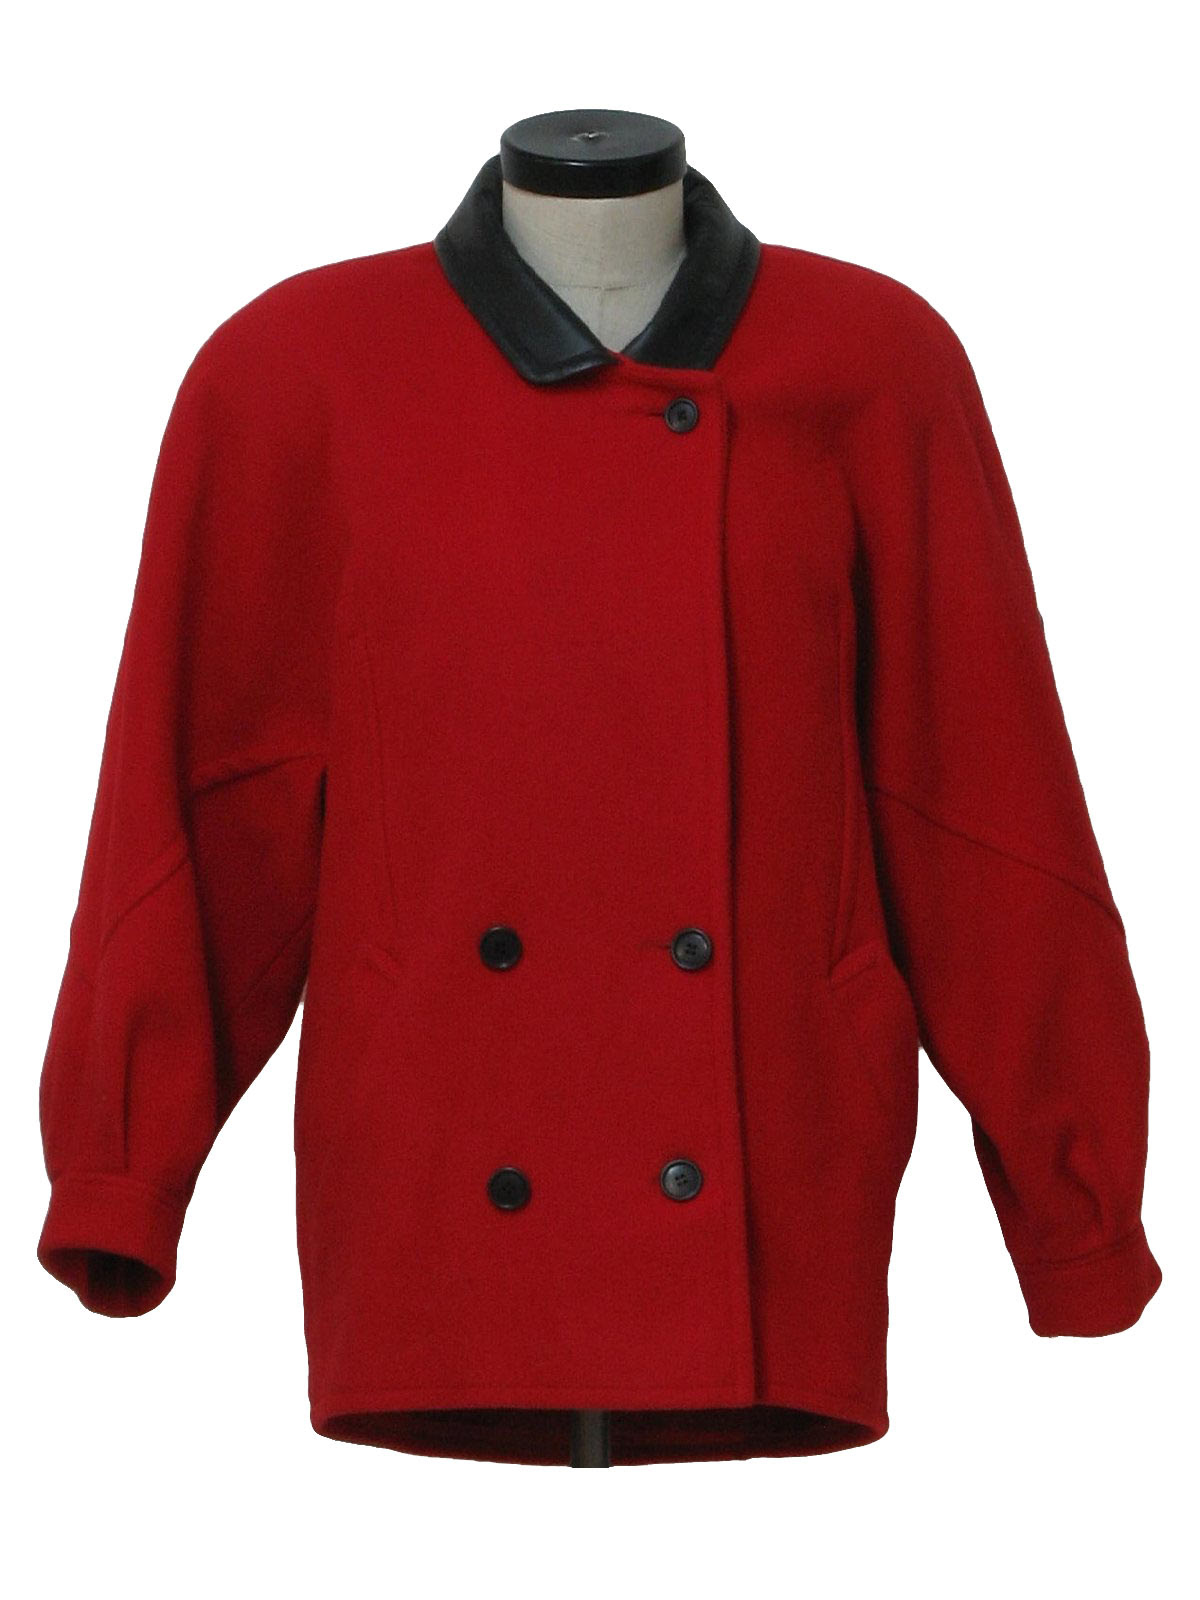 Berlin dallas womens 80s jacket with shoulder pads sims cheap